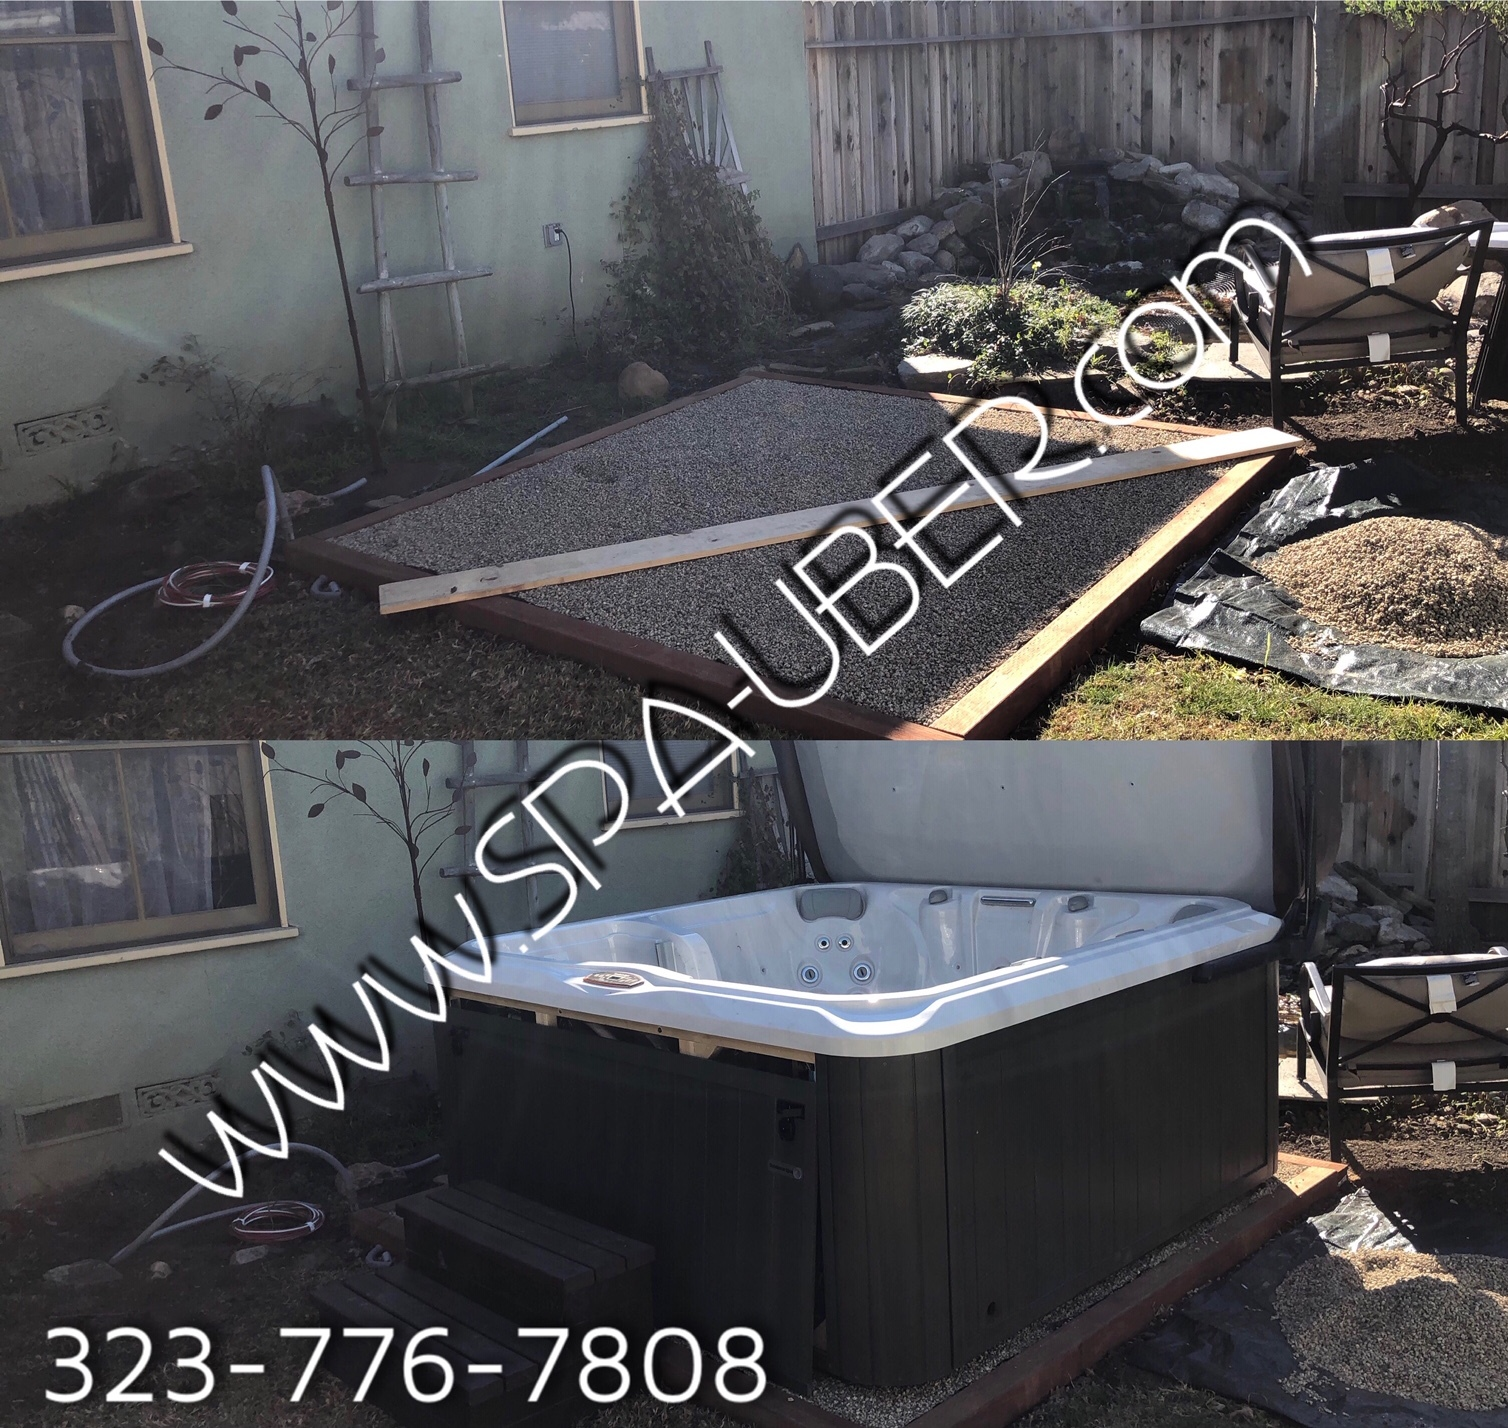 The Spa Uber Pro Spa Amp Hot Tub Movers 323 776 7808 Los